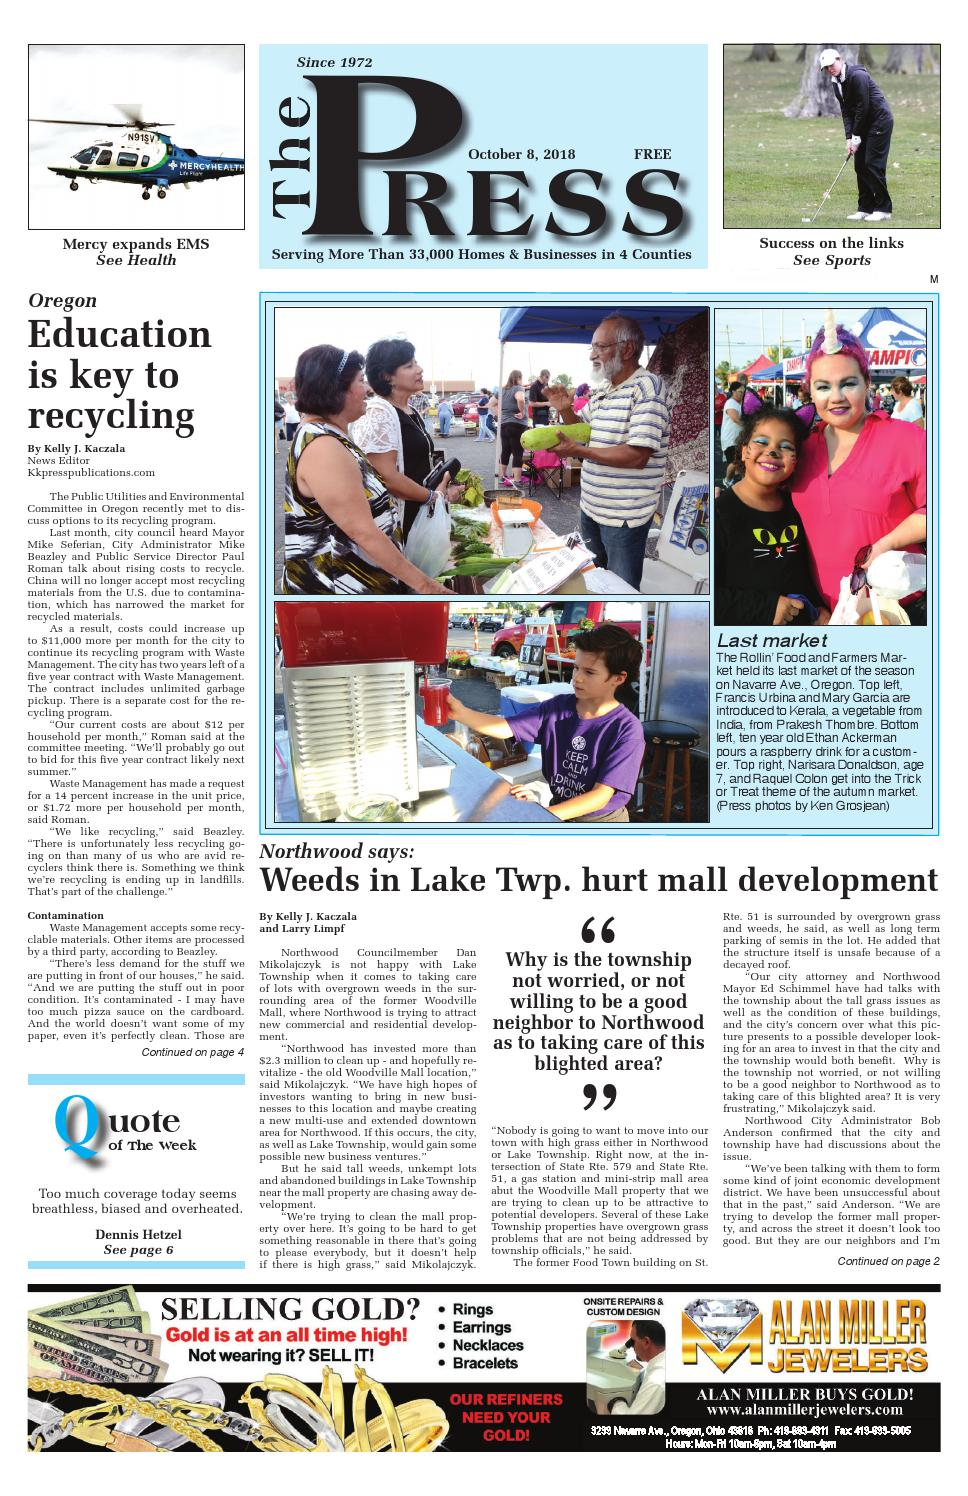 42dcf0811 Suburban Edition 10/8/18 by Press Publications - issuu